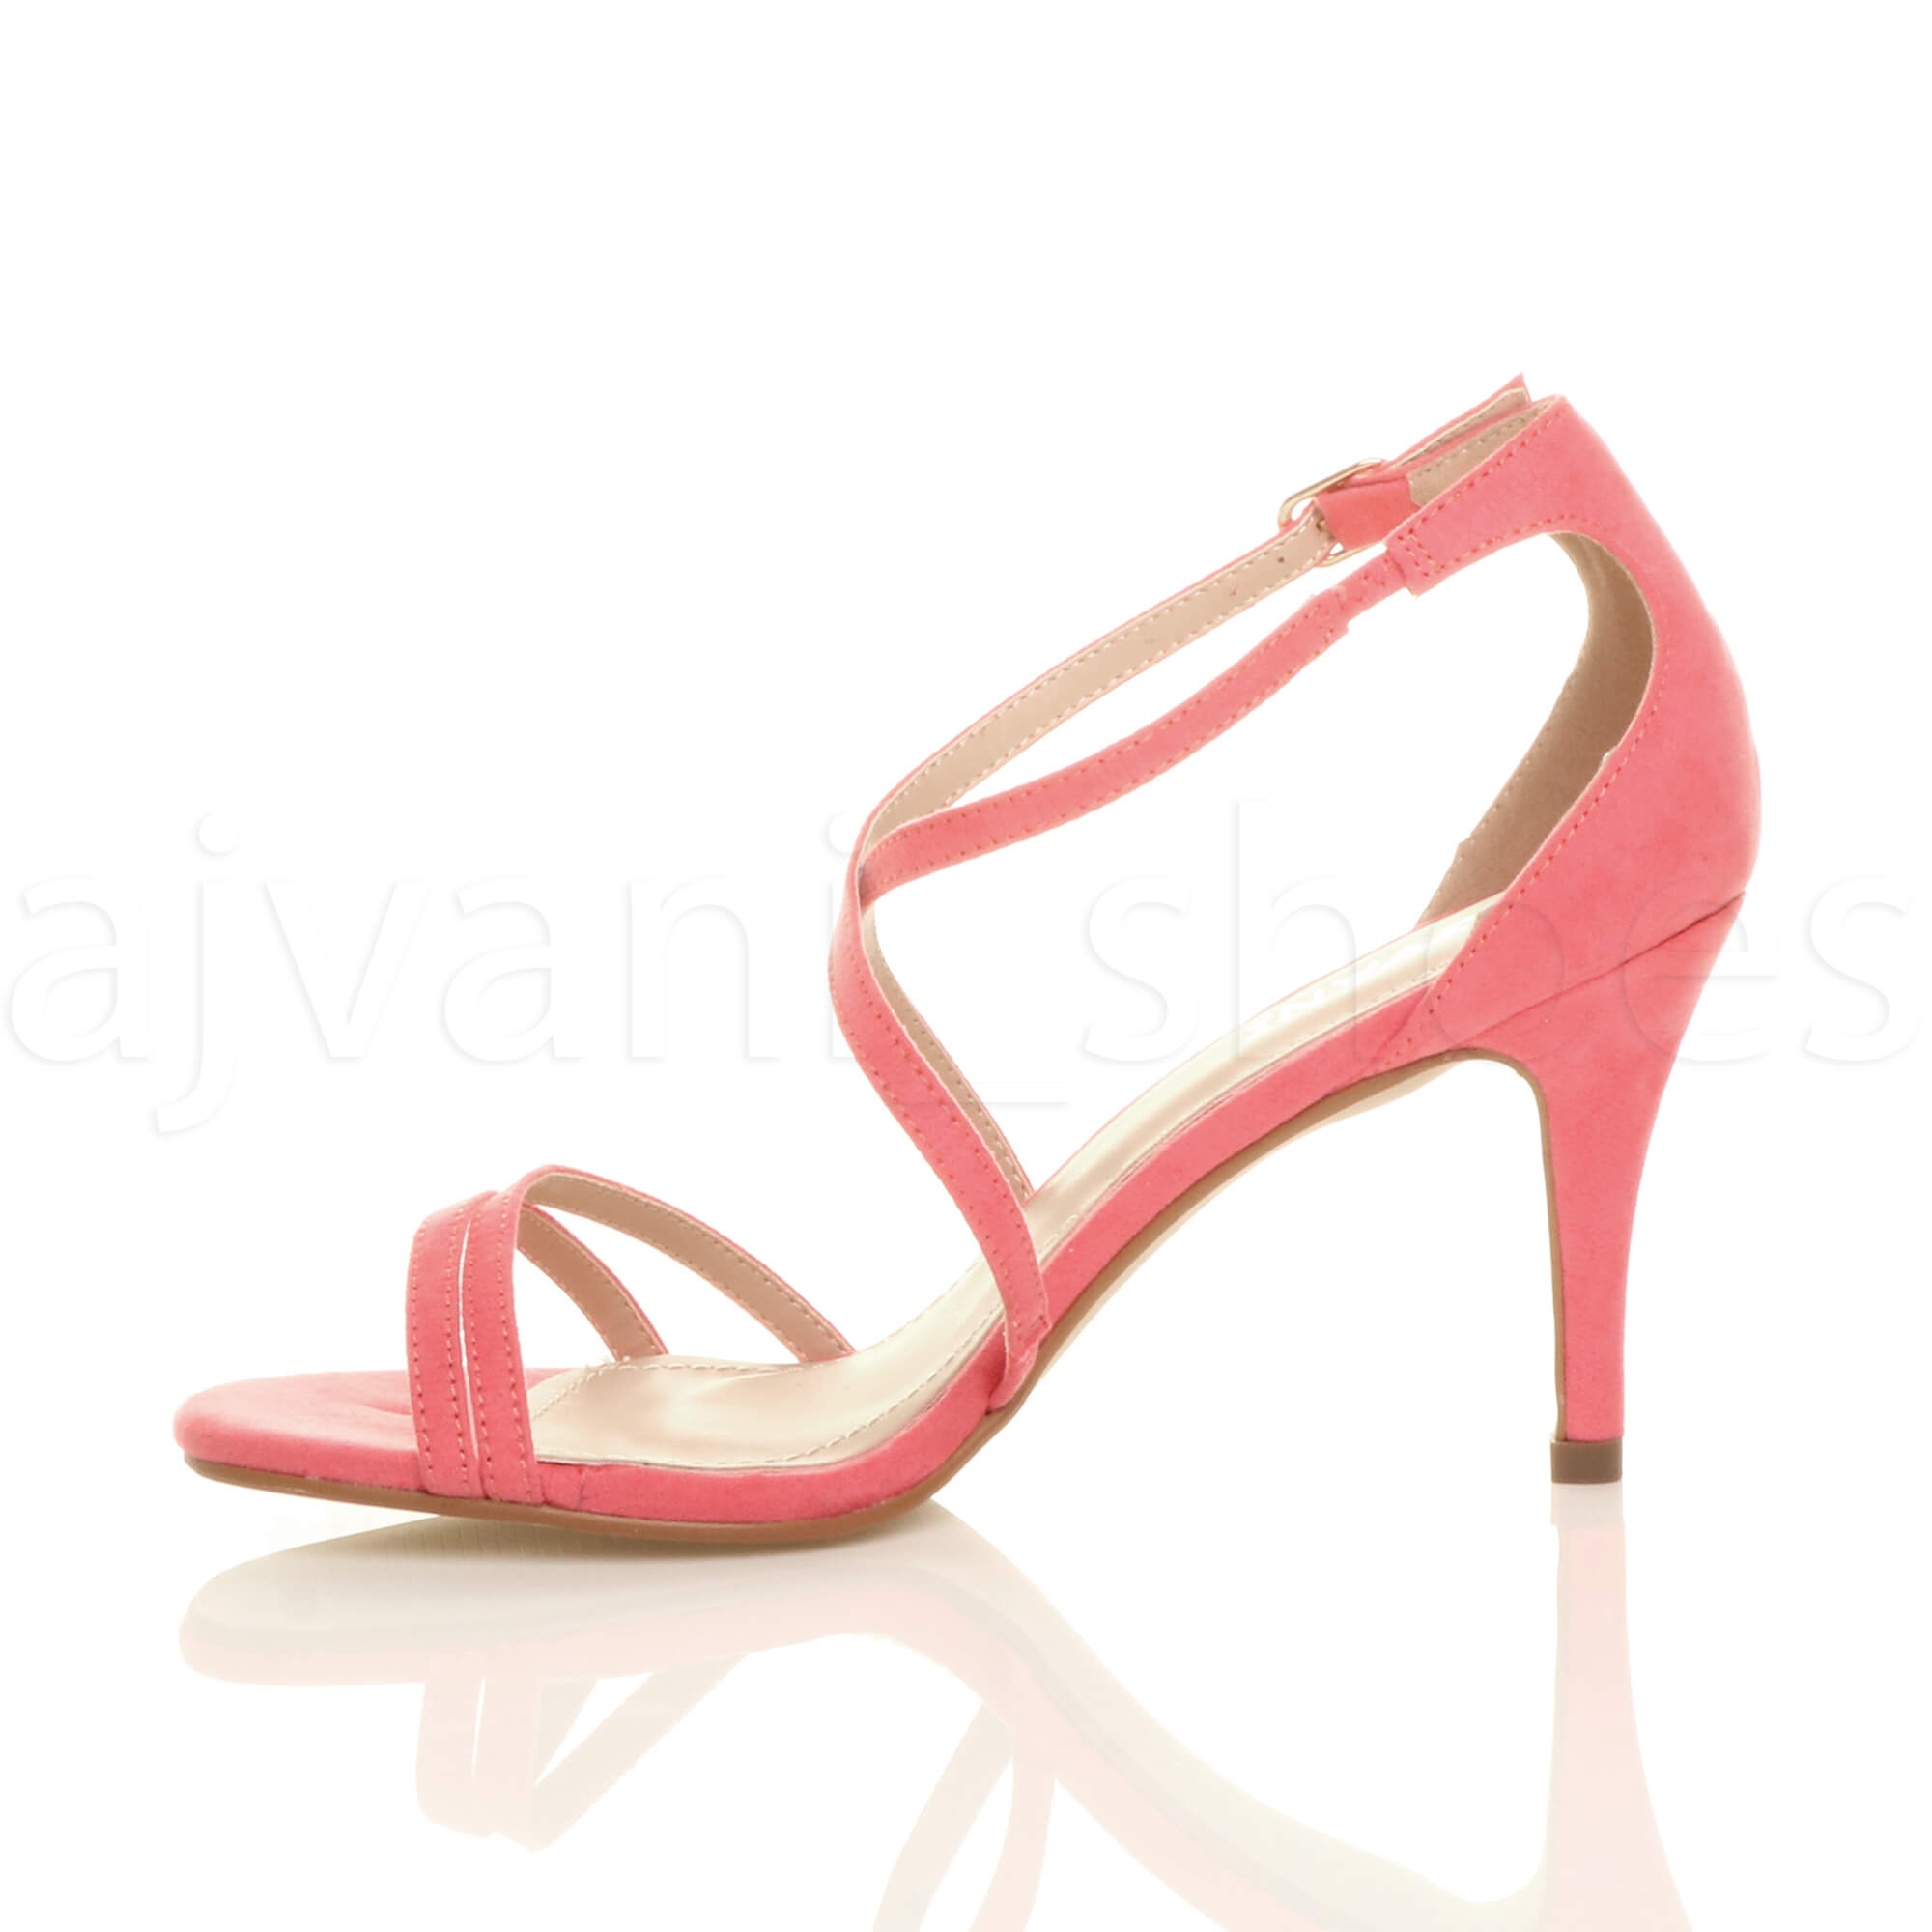 WOMENS-LADIES-MID-HIGH-HEEL-STRAPPY-CROSSOVER-WEDDING-PROM-SANDALS-SHOES-SIZE thumbnail 39